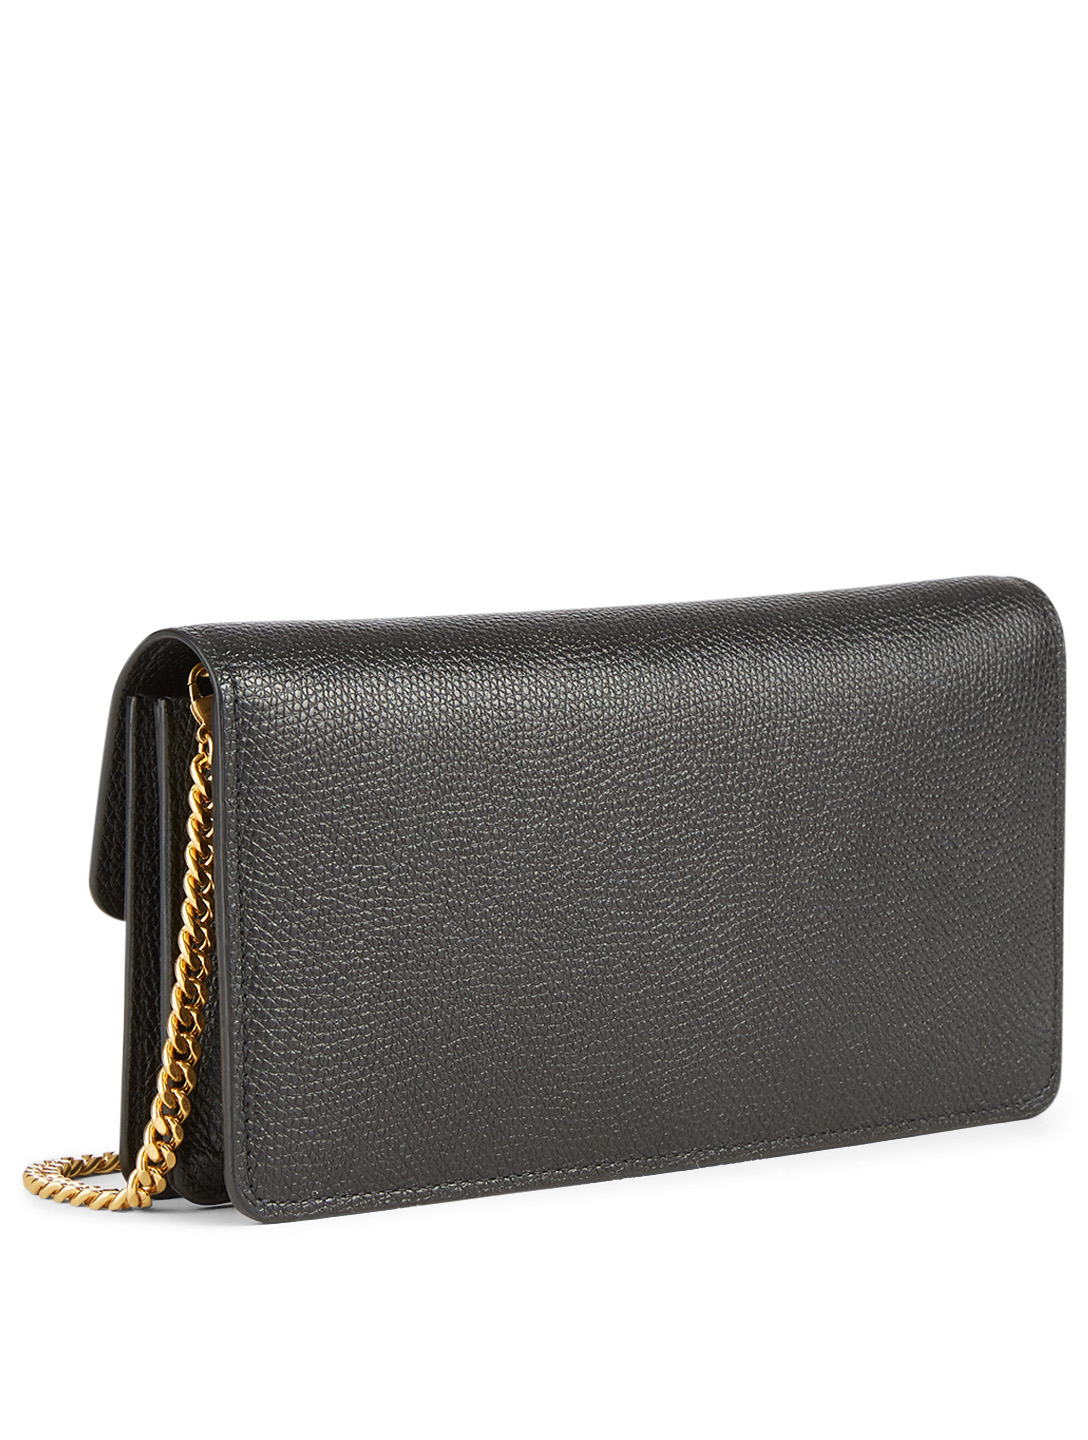 VALENTINO GARAVANI VSLING Leather Chain Wallet Bag Women's Black